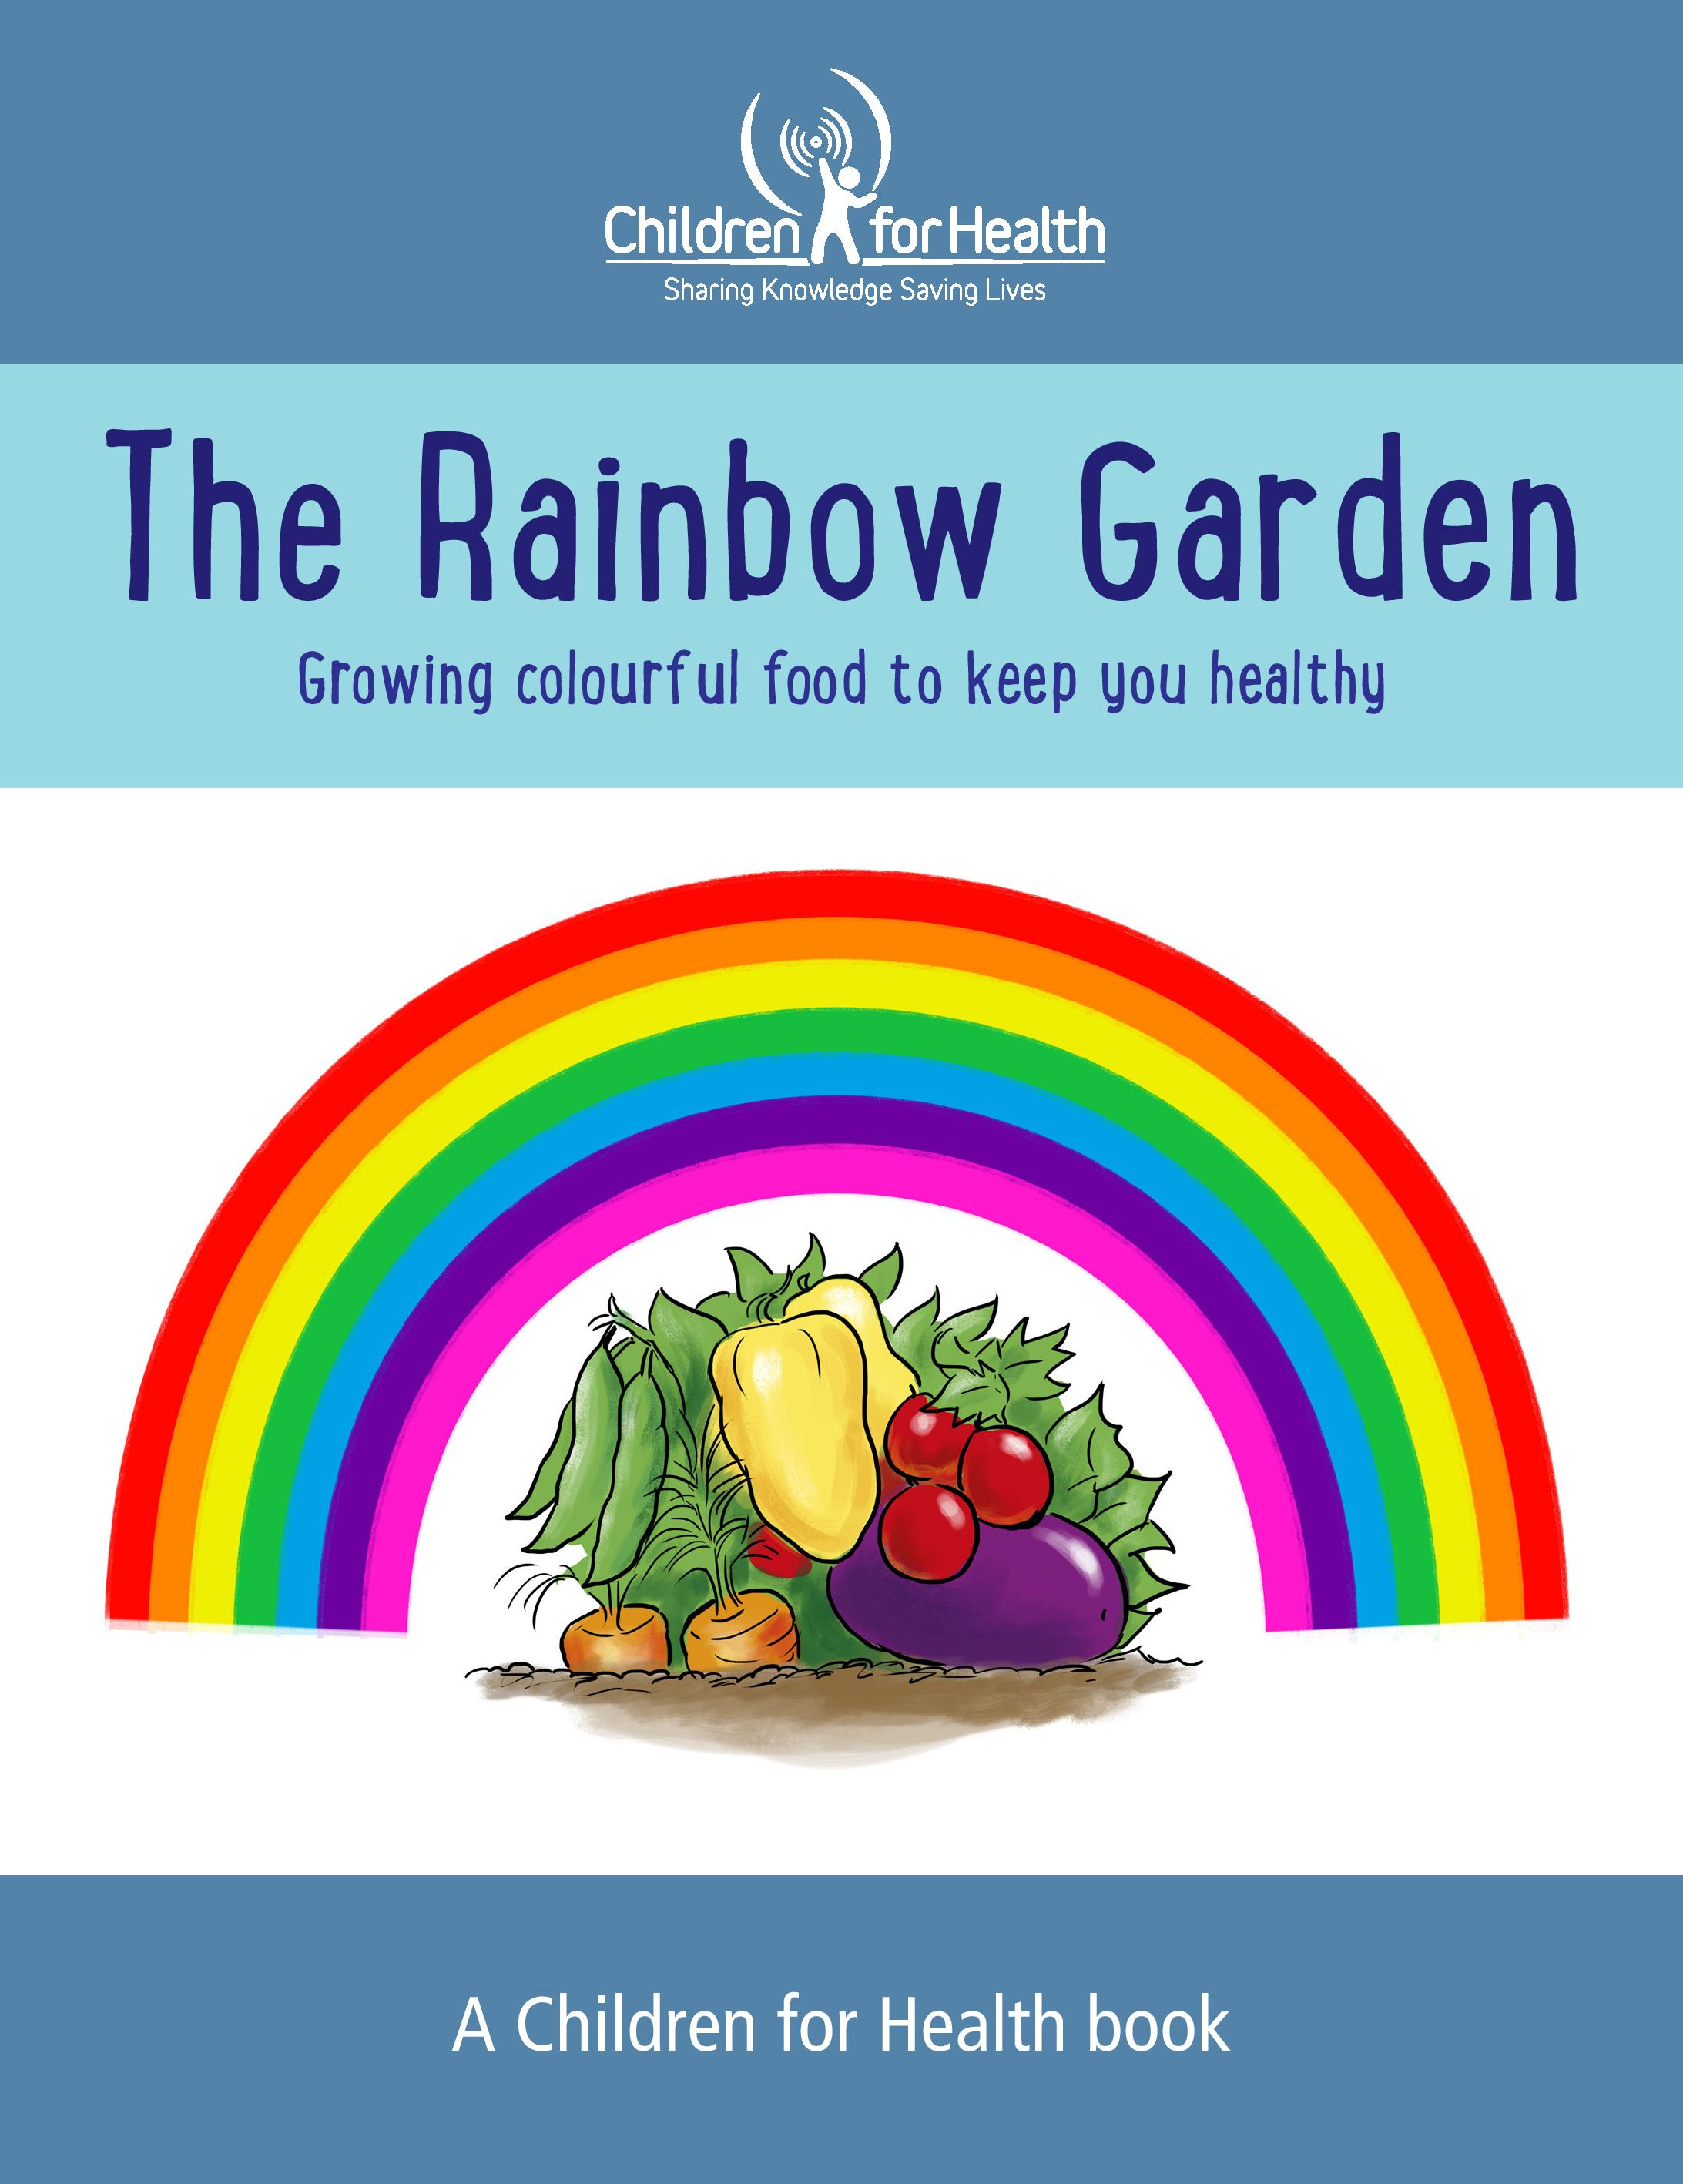 Front Cover of our storybook The Rainbow Garden